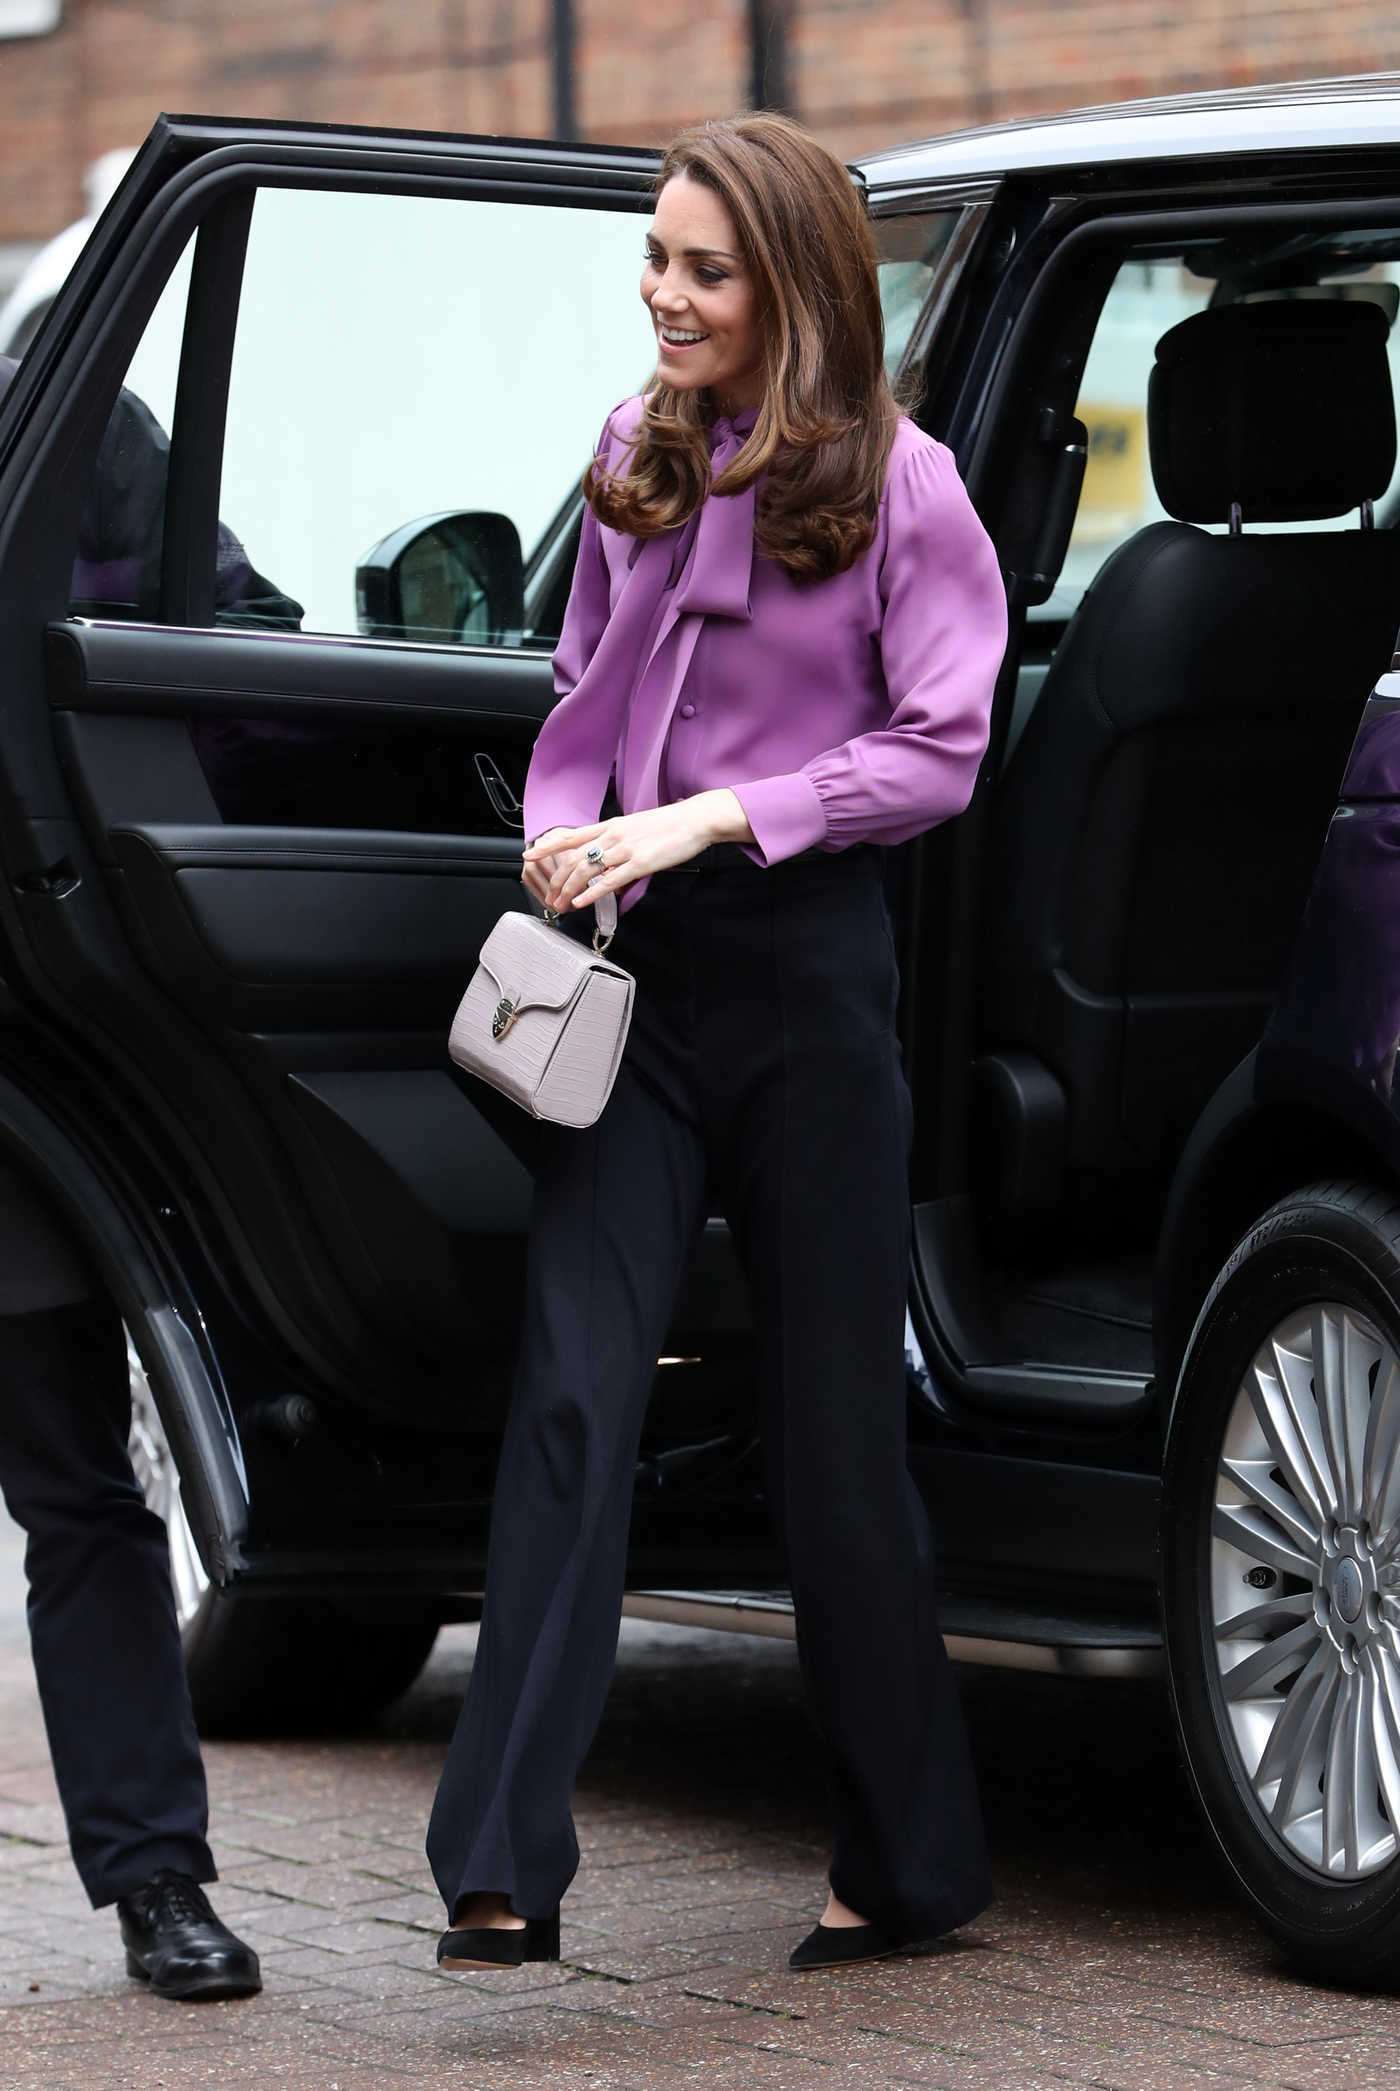 Kate Middleton in a Purple Blouse Visits Henry Fawcett Children's Centre in London 03/12/2019